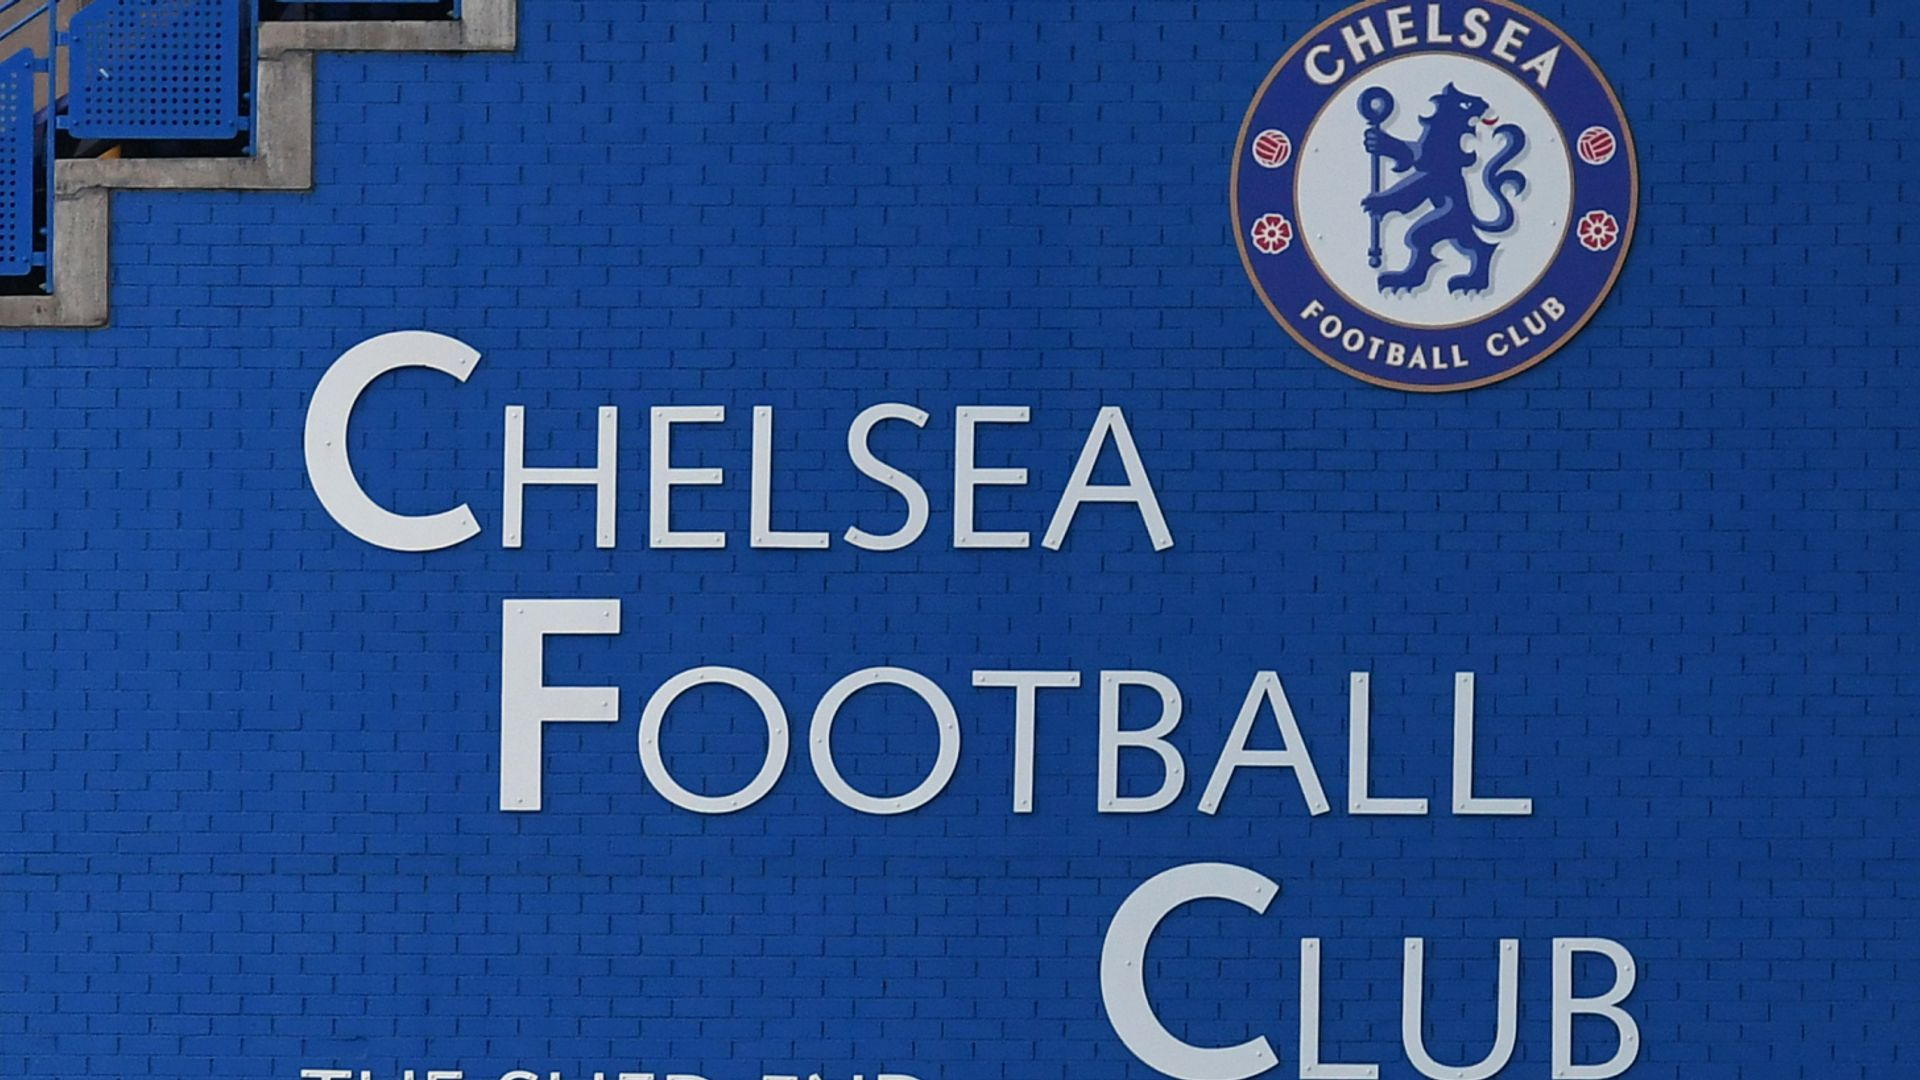 Chelsea to include fans in board meetings after Super League backlash | Football